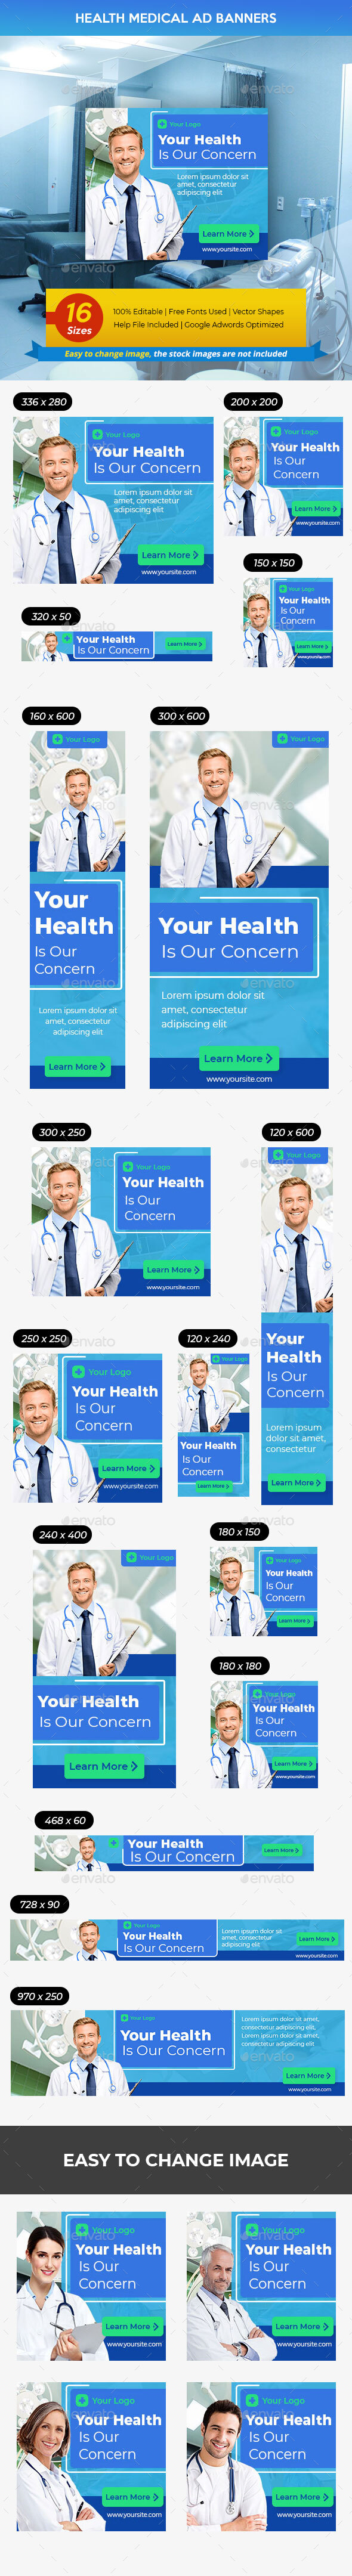 Health Care Medical Ads Banner